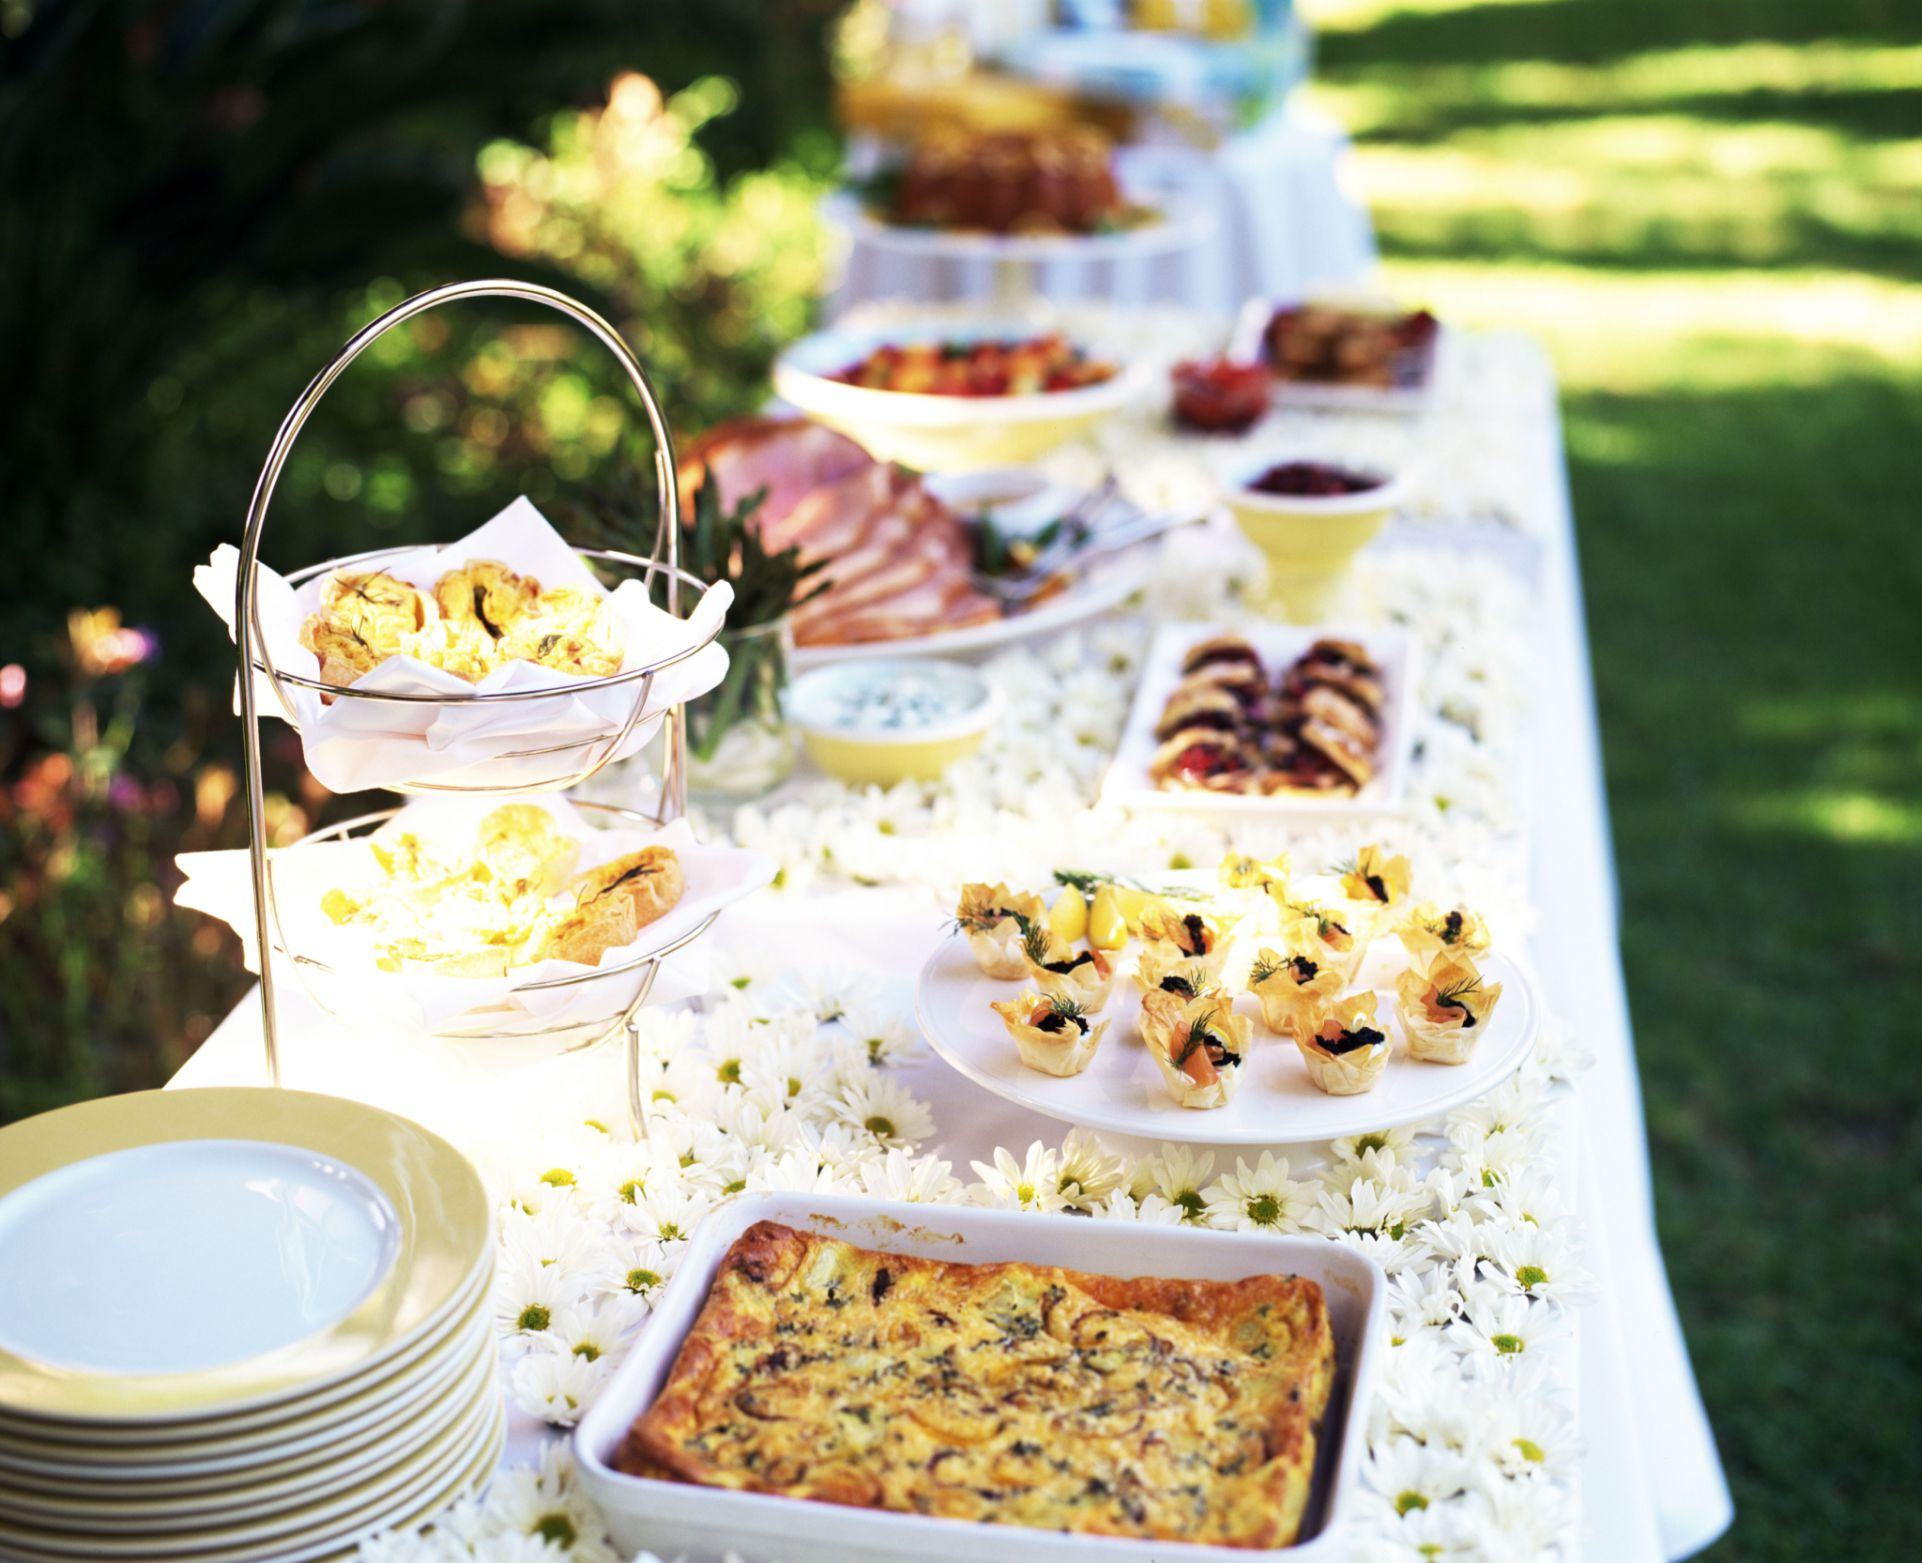 Day After Wedding Brunch Invitation: Treating Your Guests To A Day-After-Wedding Brunch